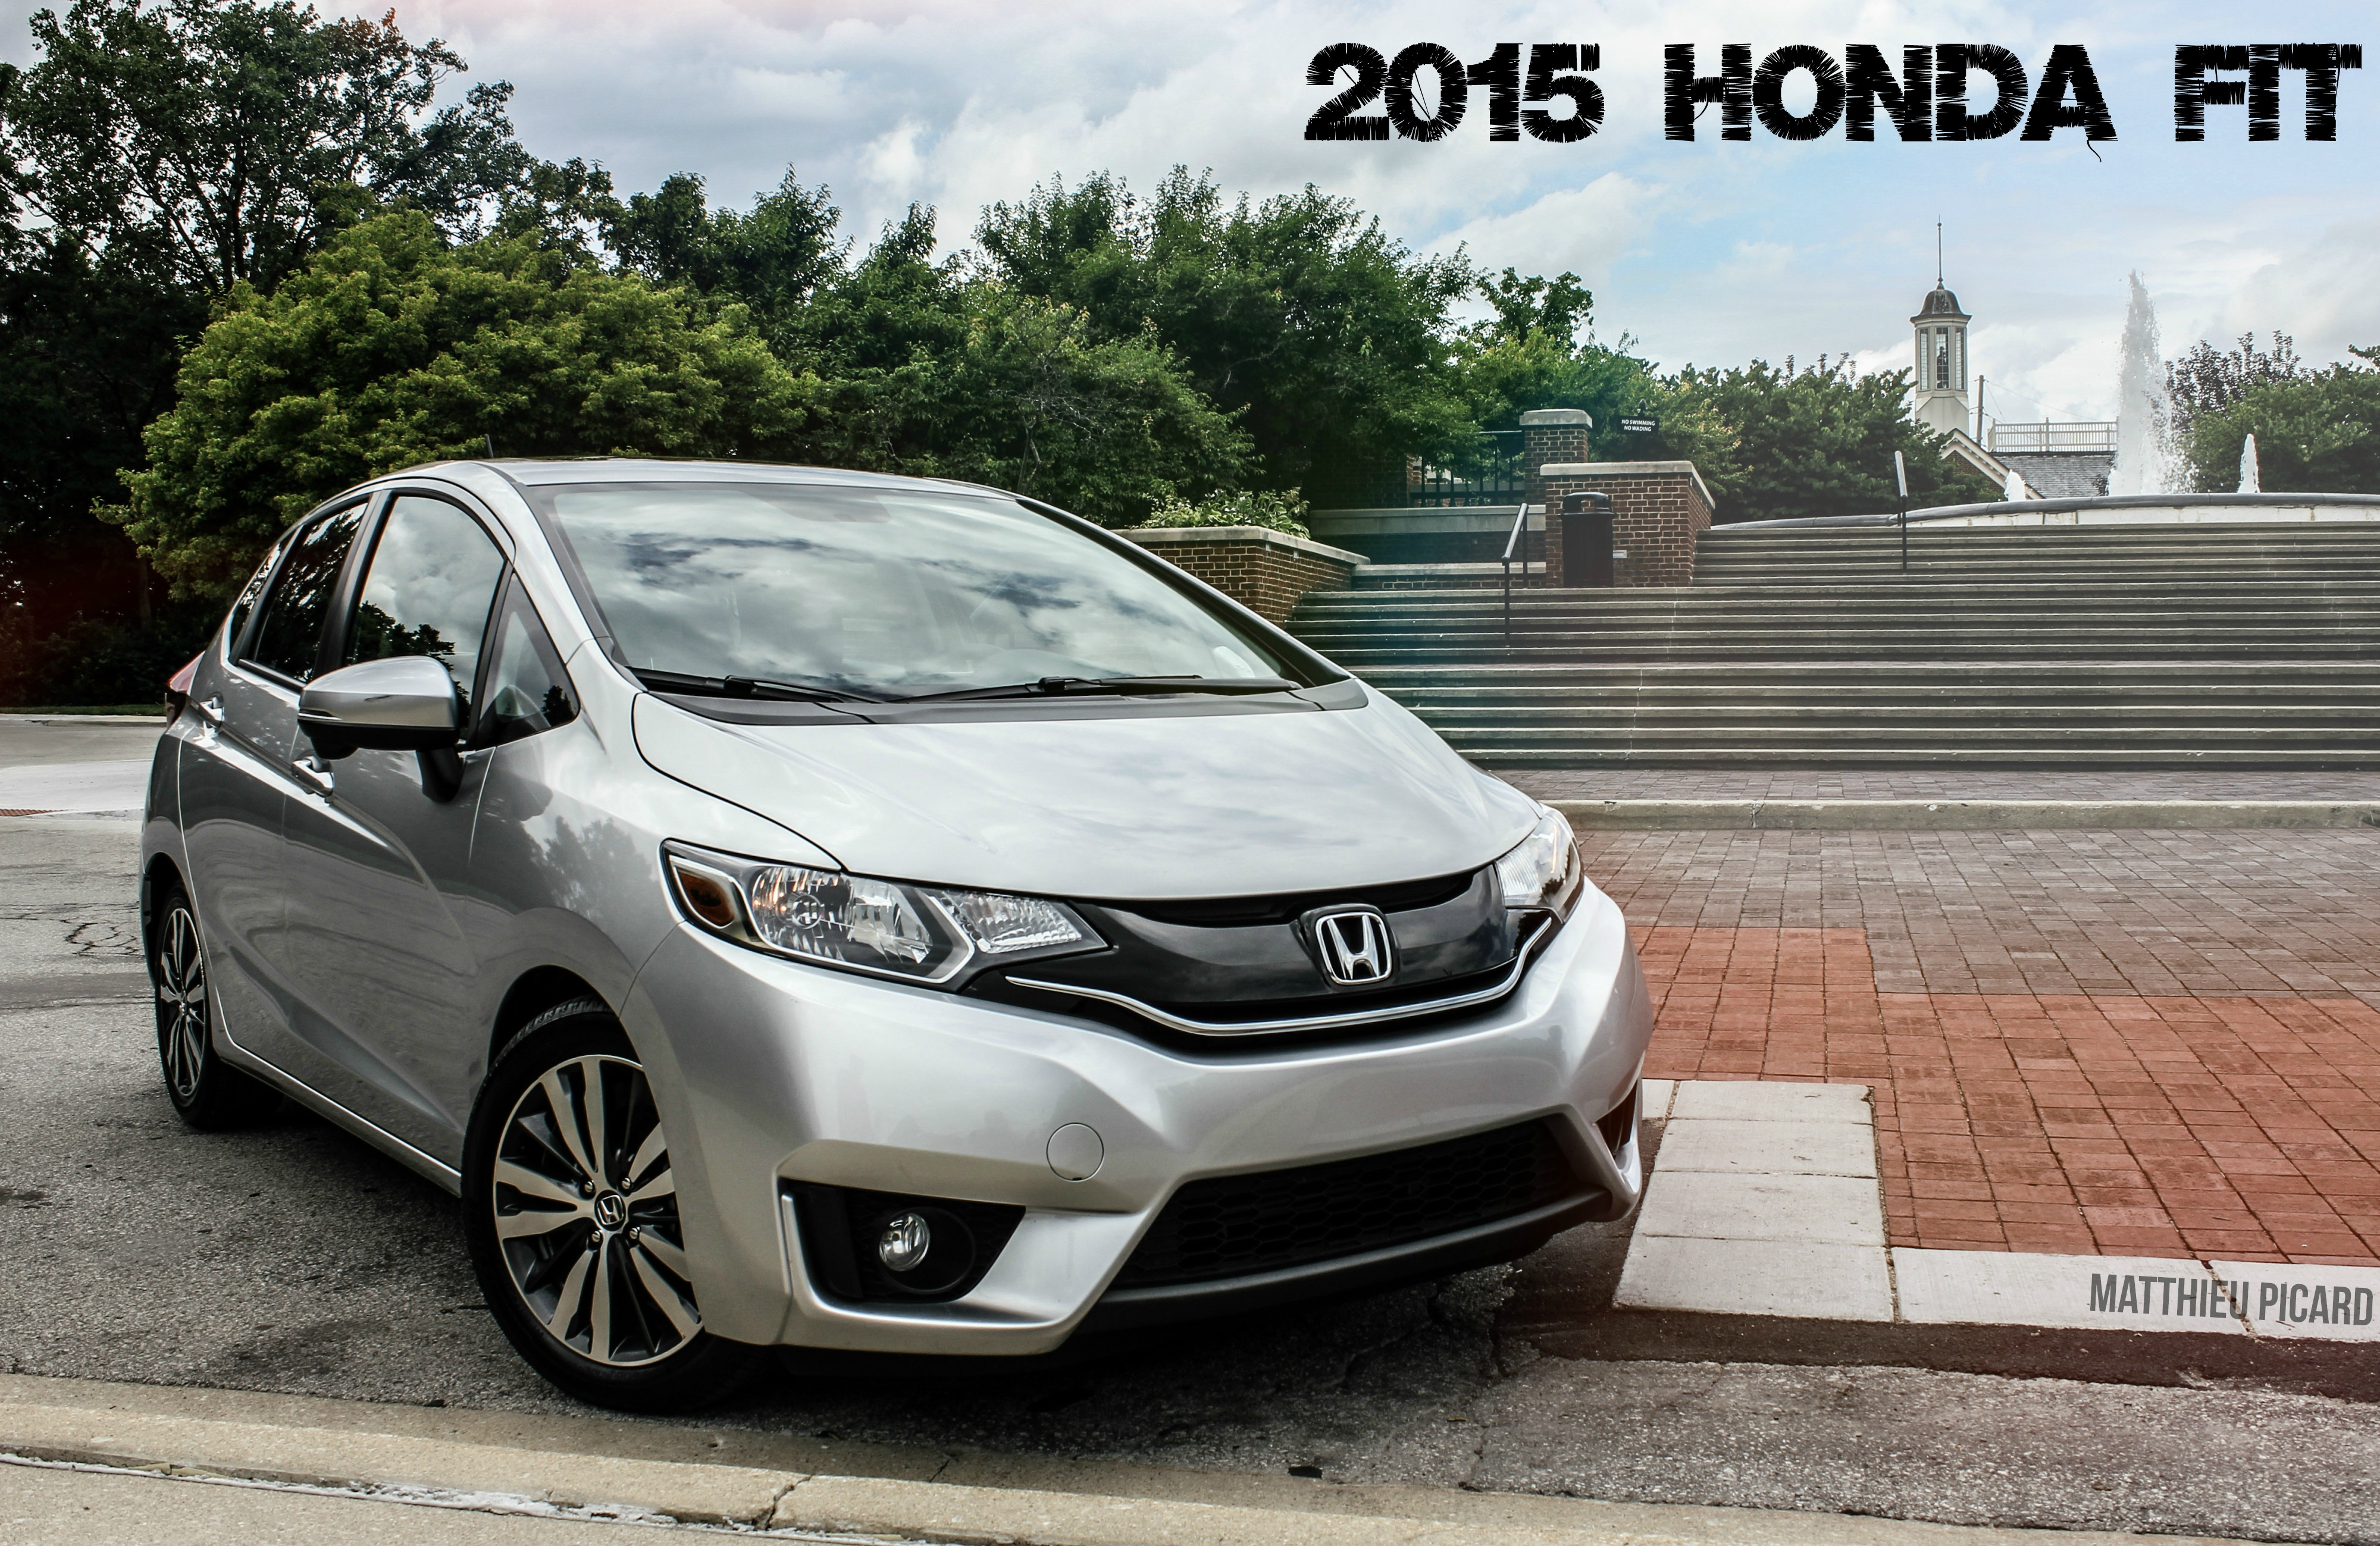 2015 honda fit the perfect fit life is poppin 39. Black Bedroom Furniture Sets. Home Design Ideas